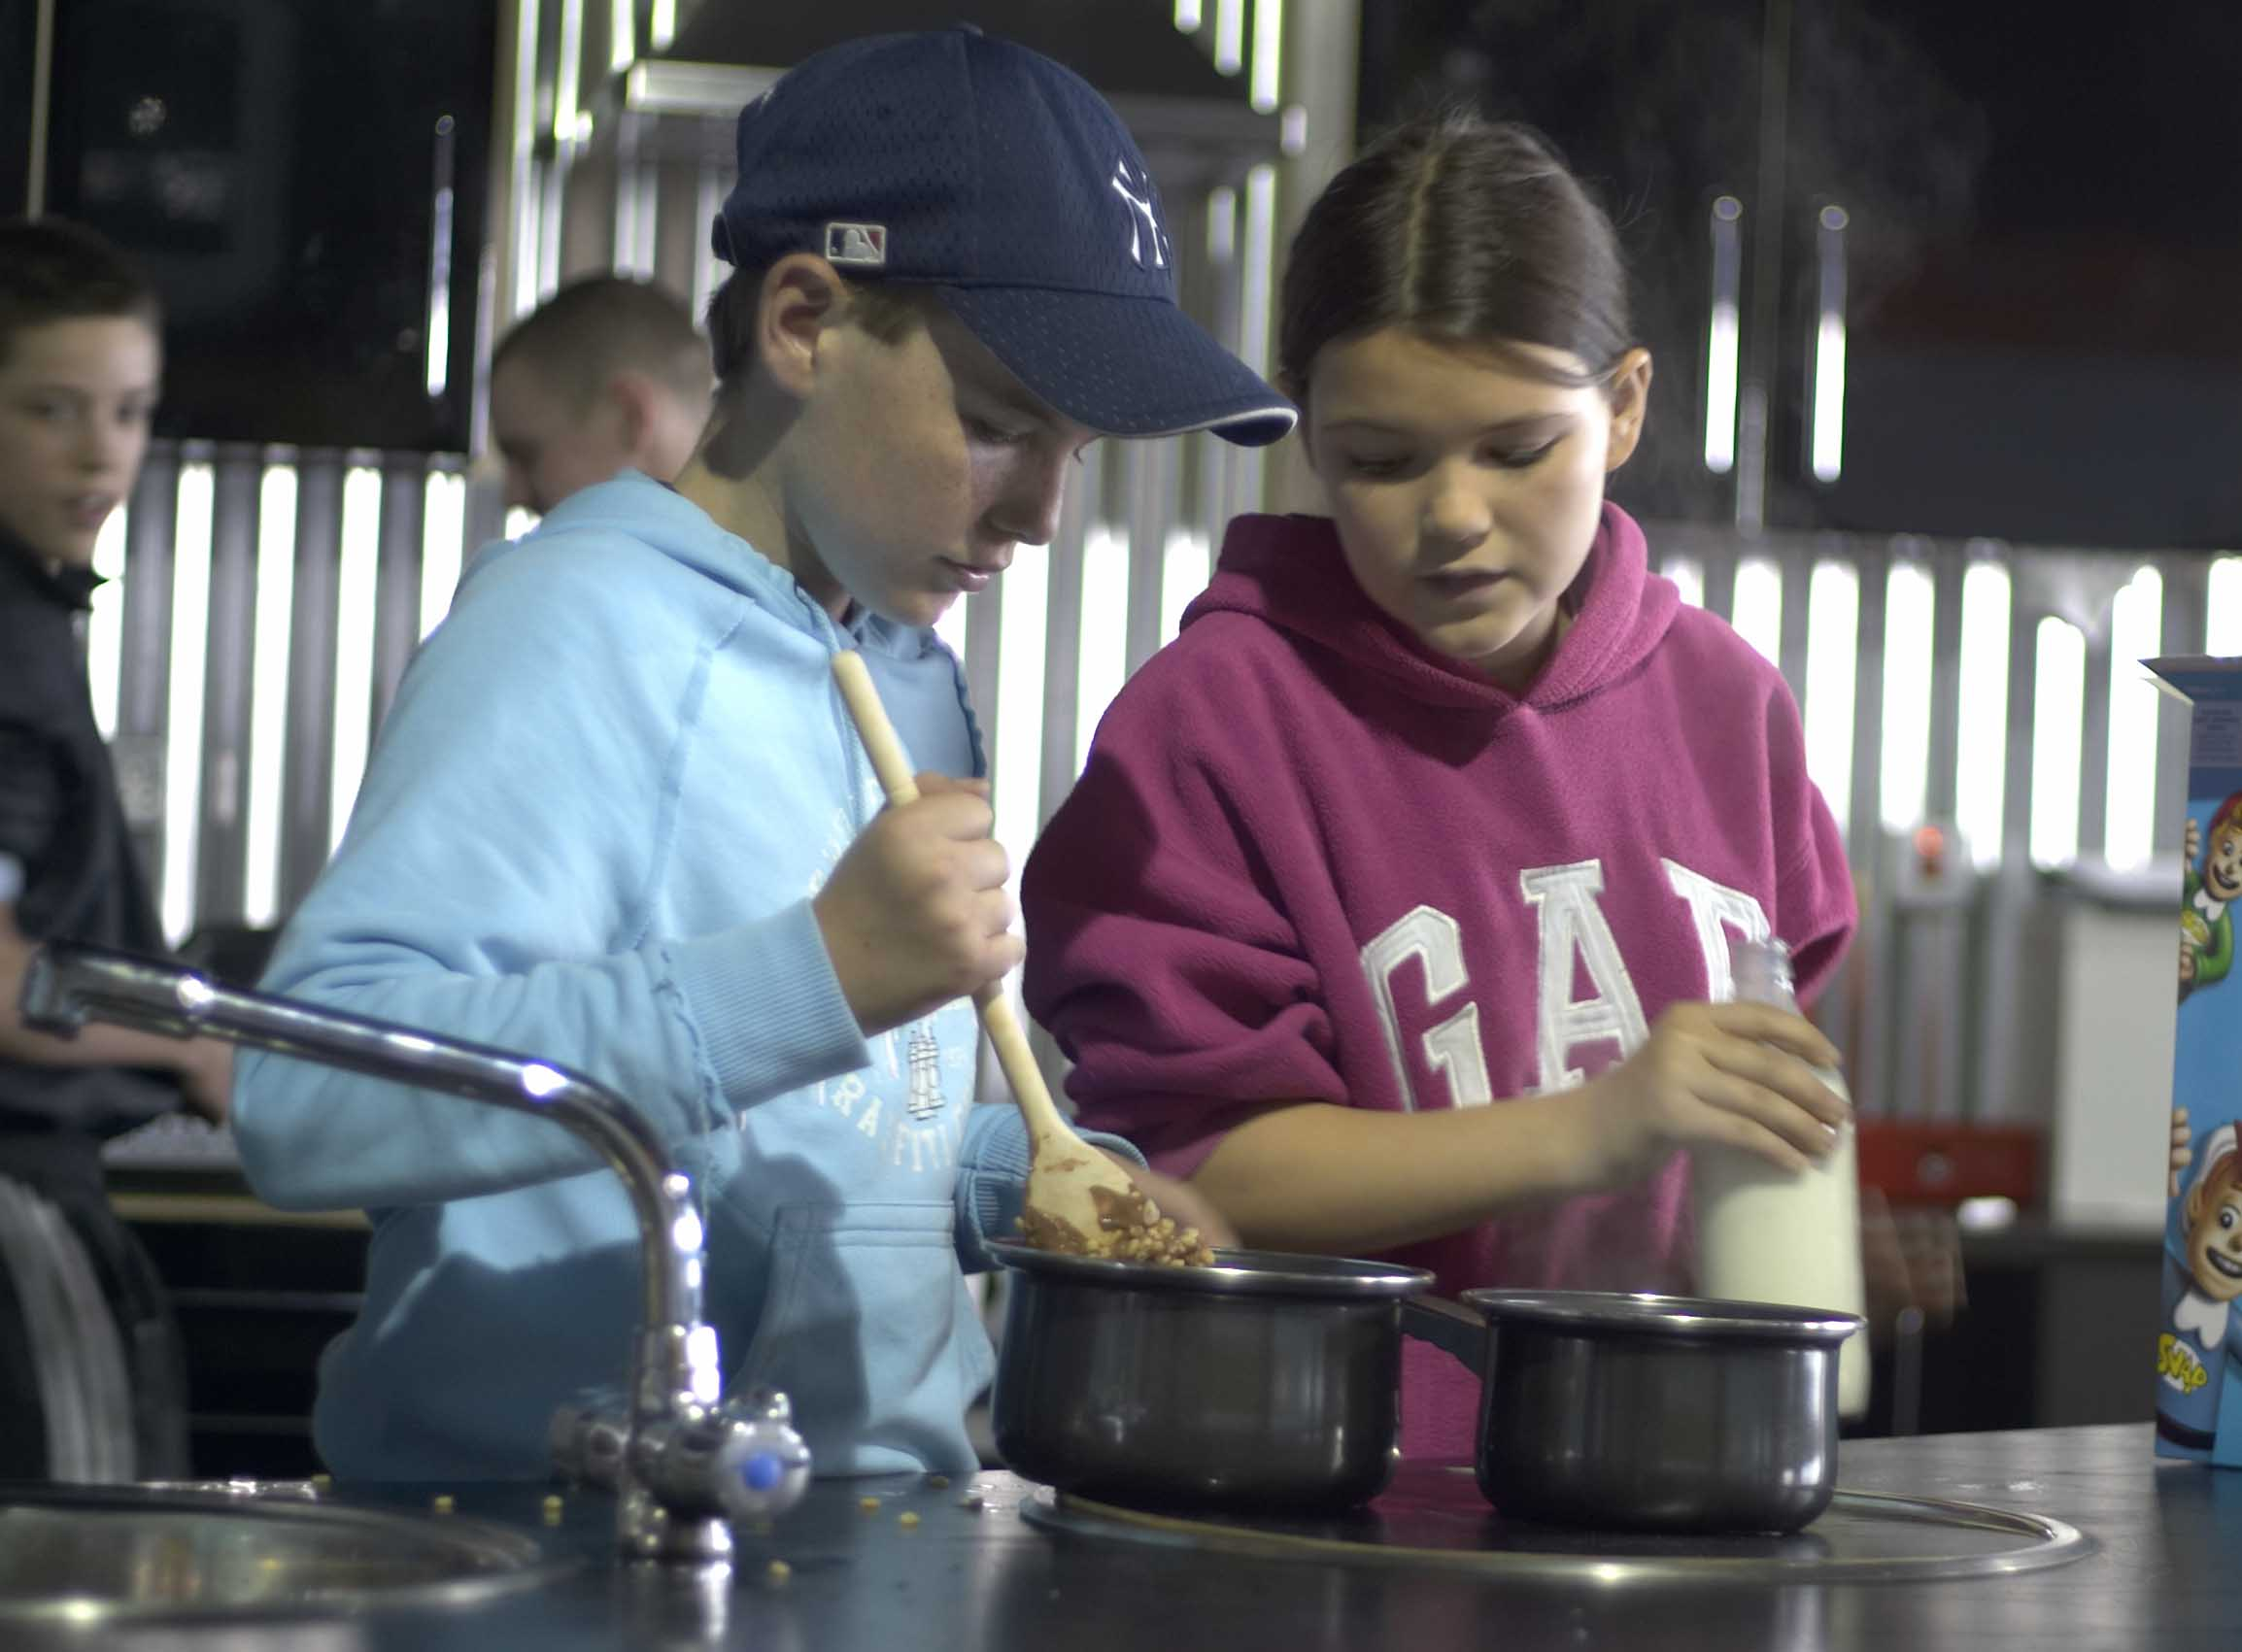 Young girl and boy in cooking class